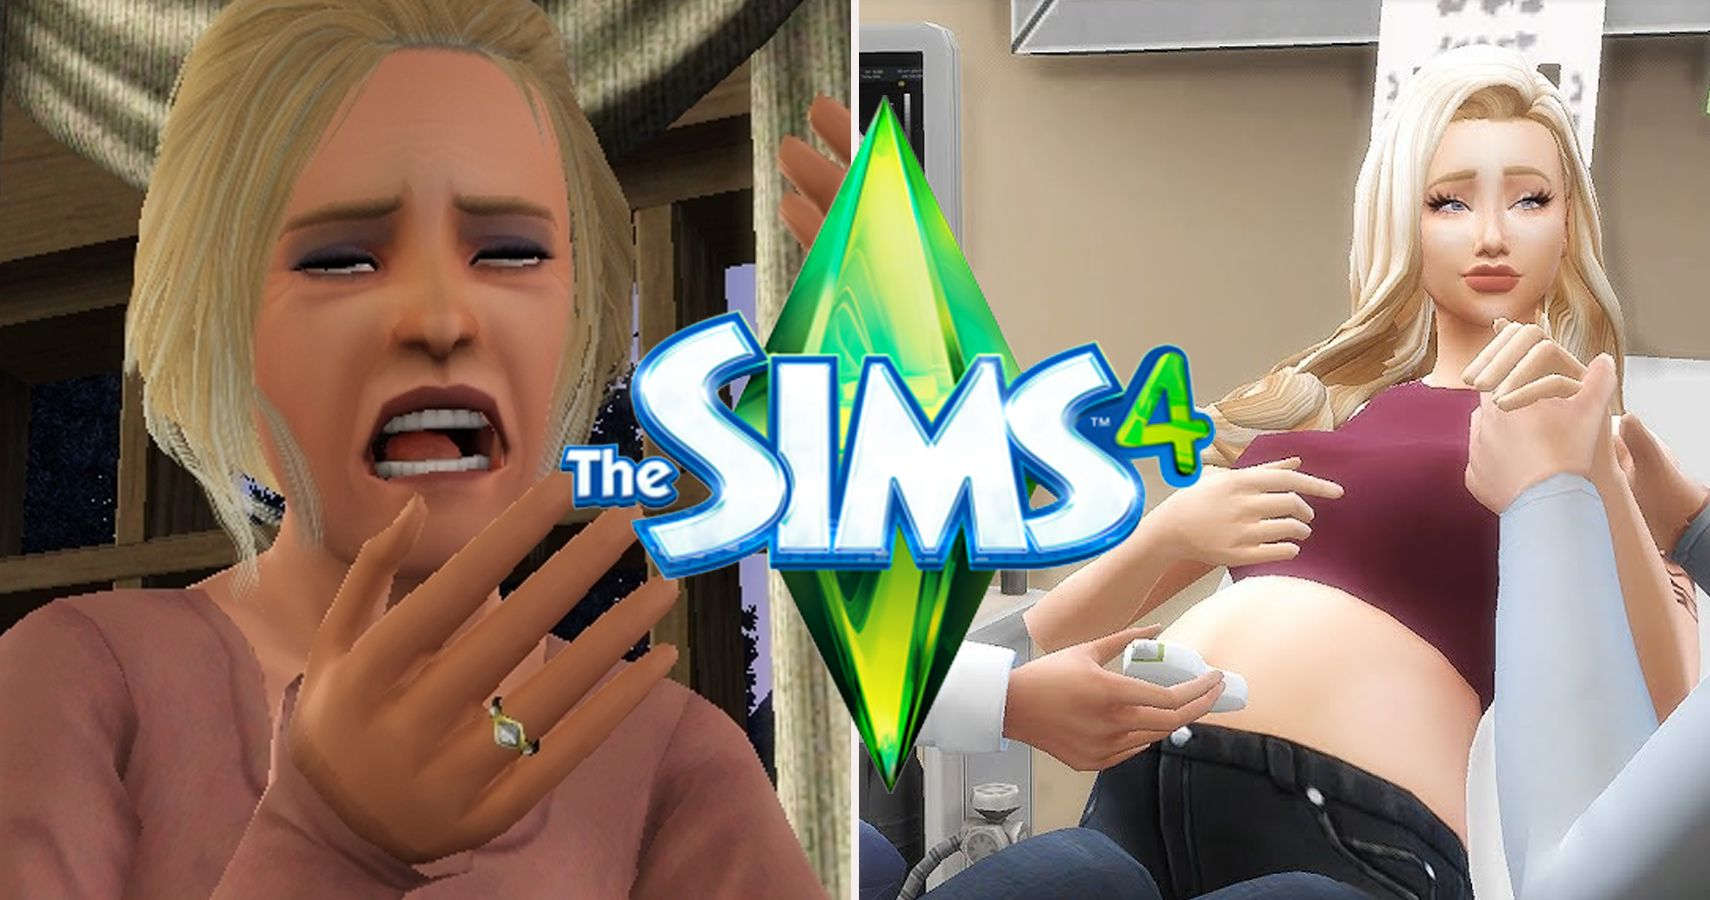 Dark Secrets You Didn't Know About The Sims 4 | TheGamer